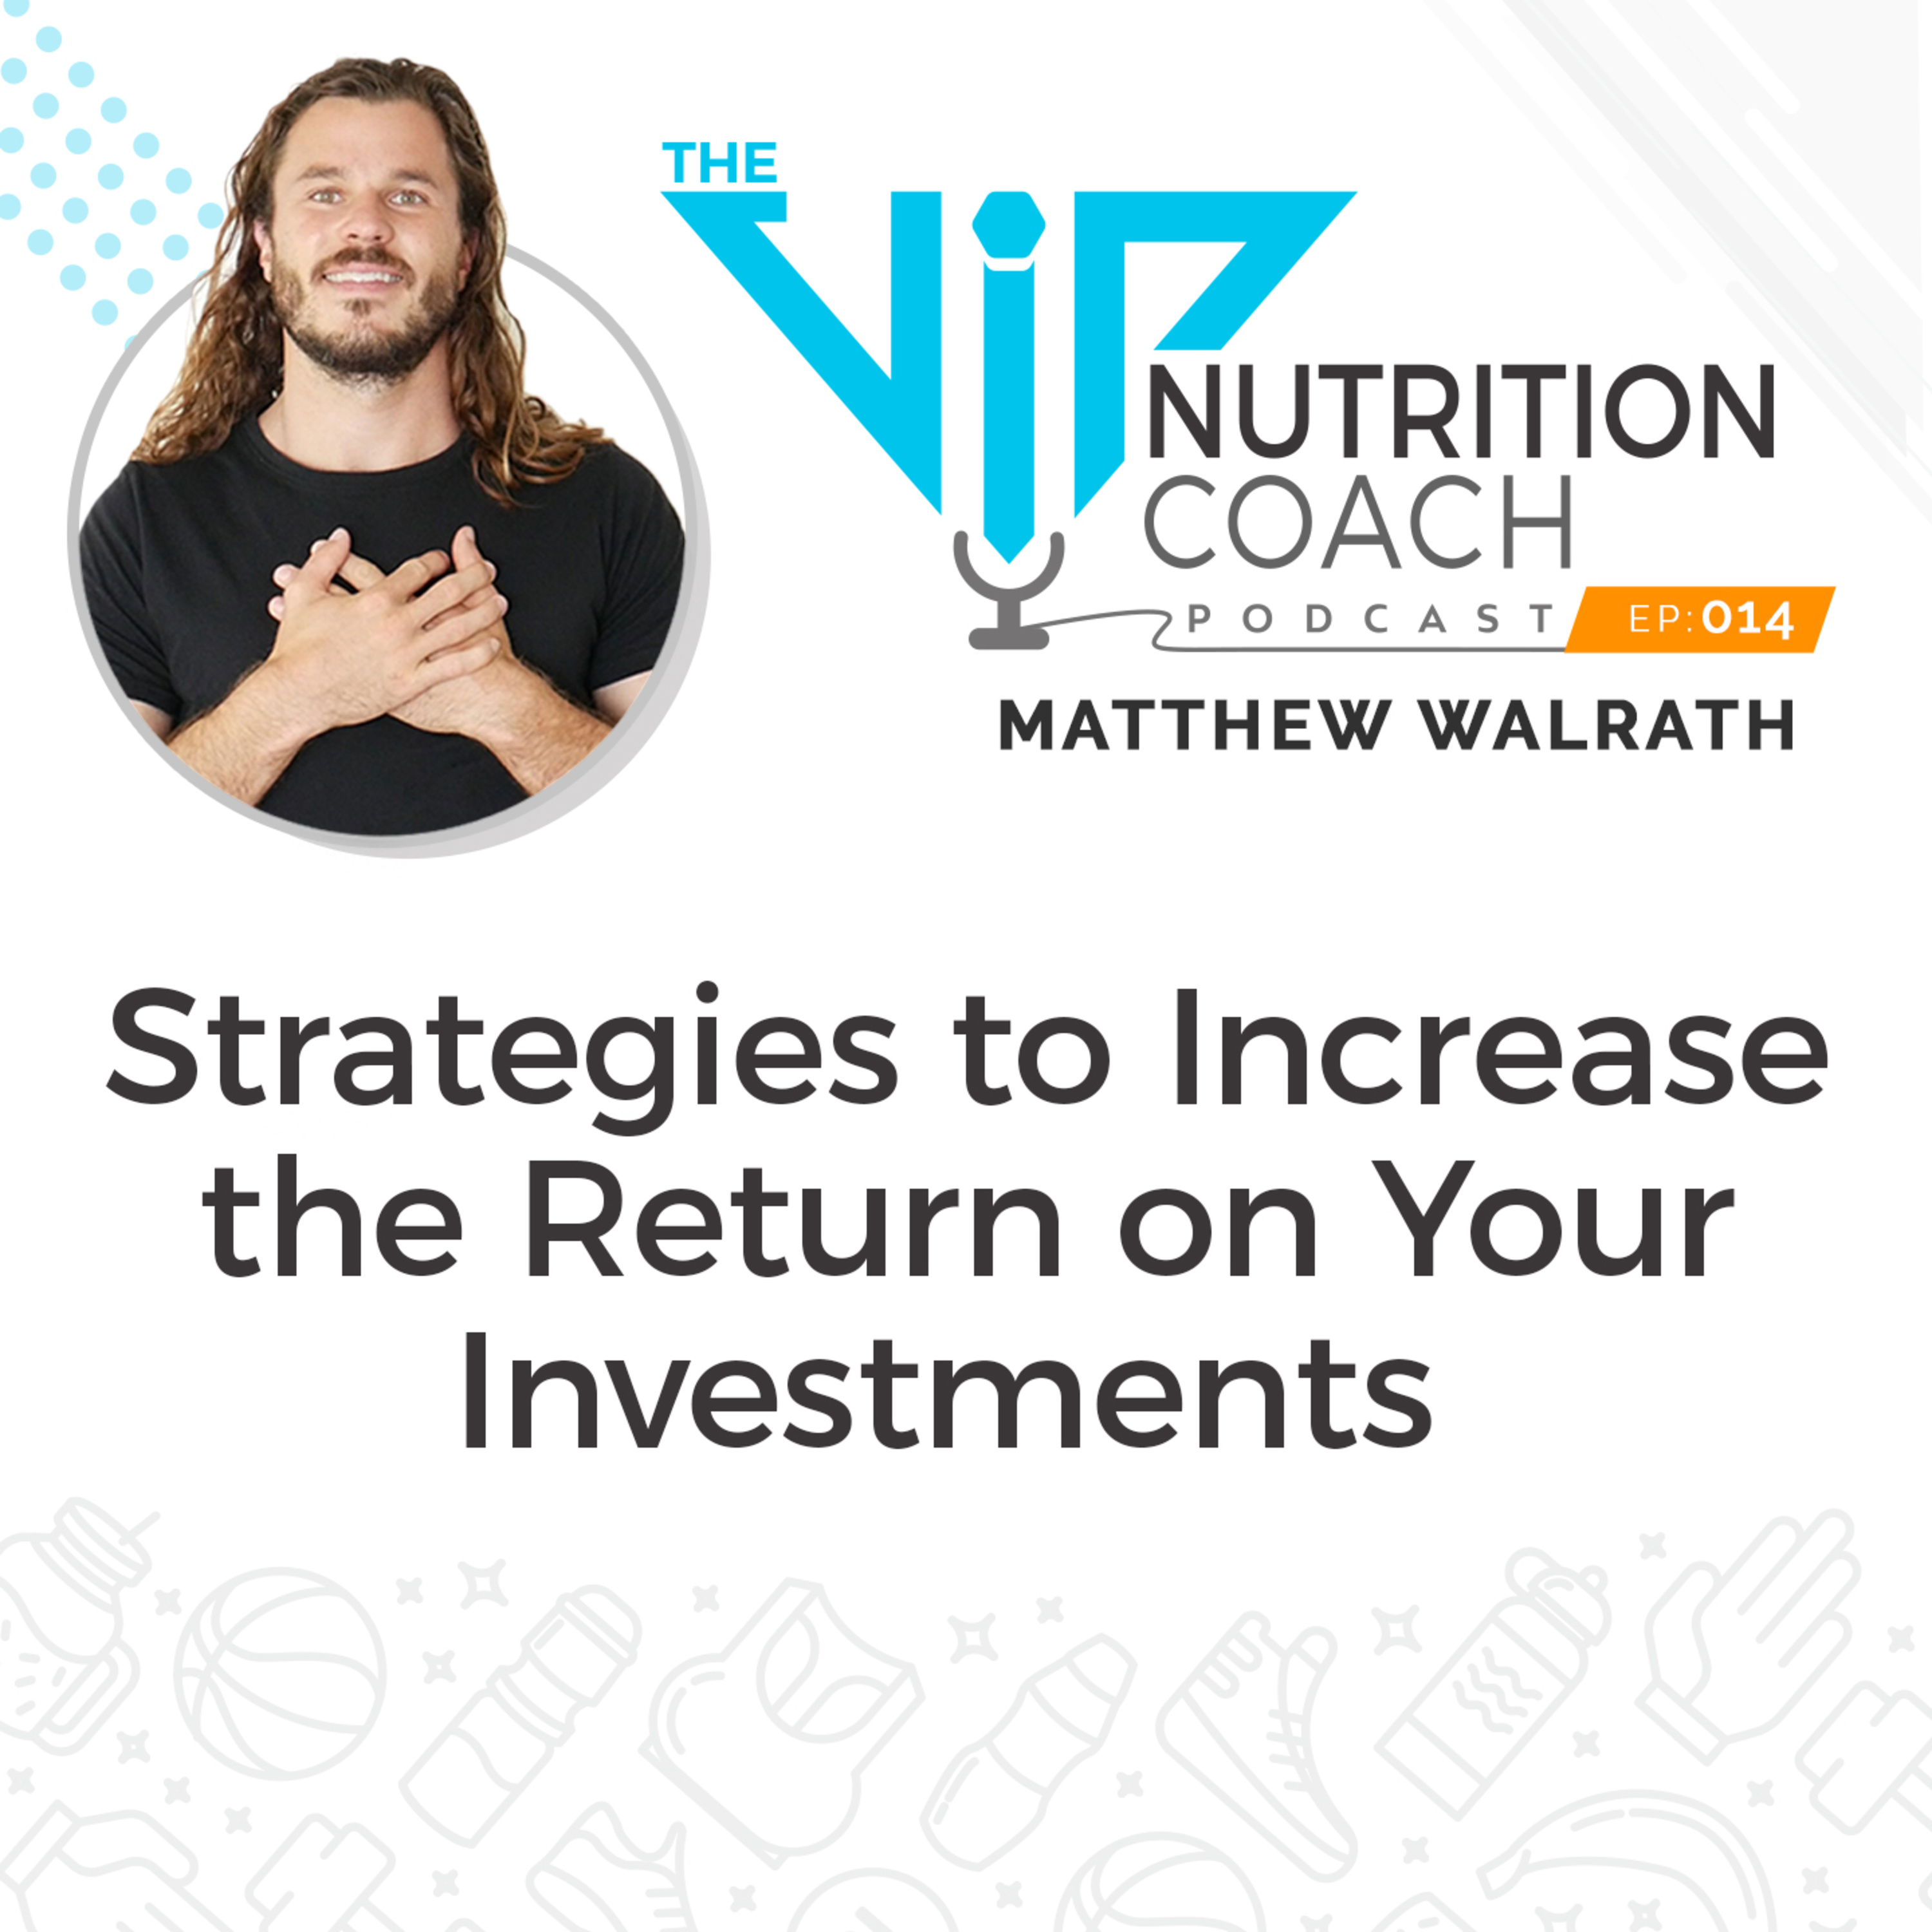 Strategies to Increase the Return on Your Investments